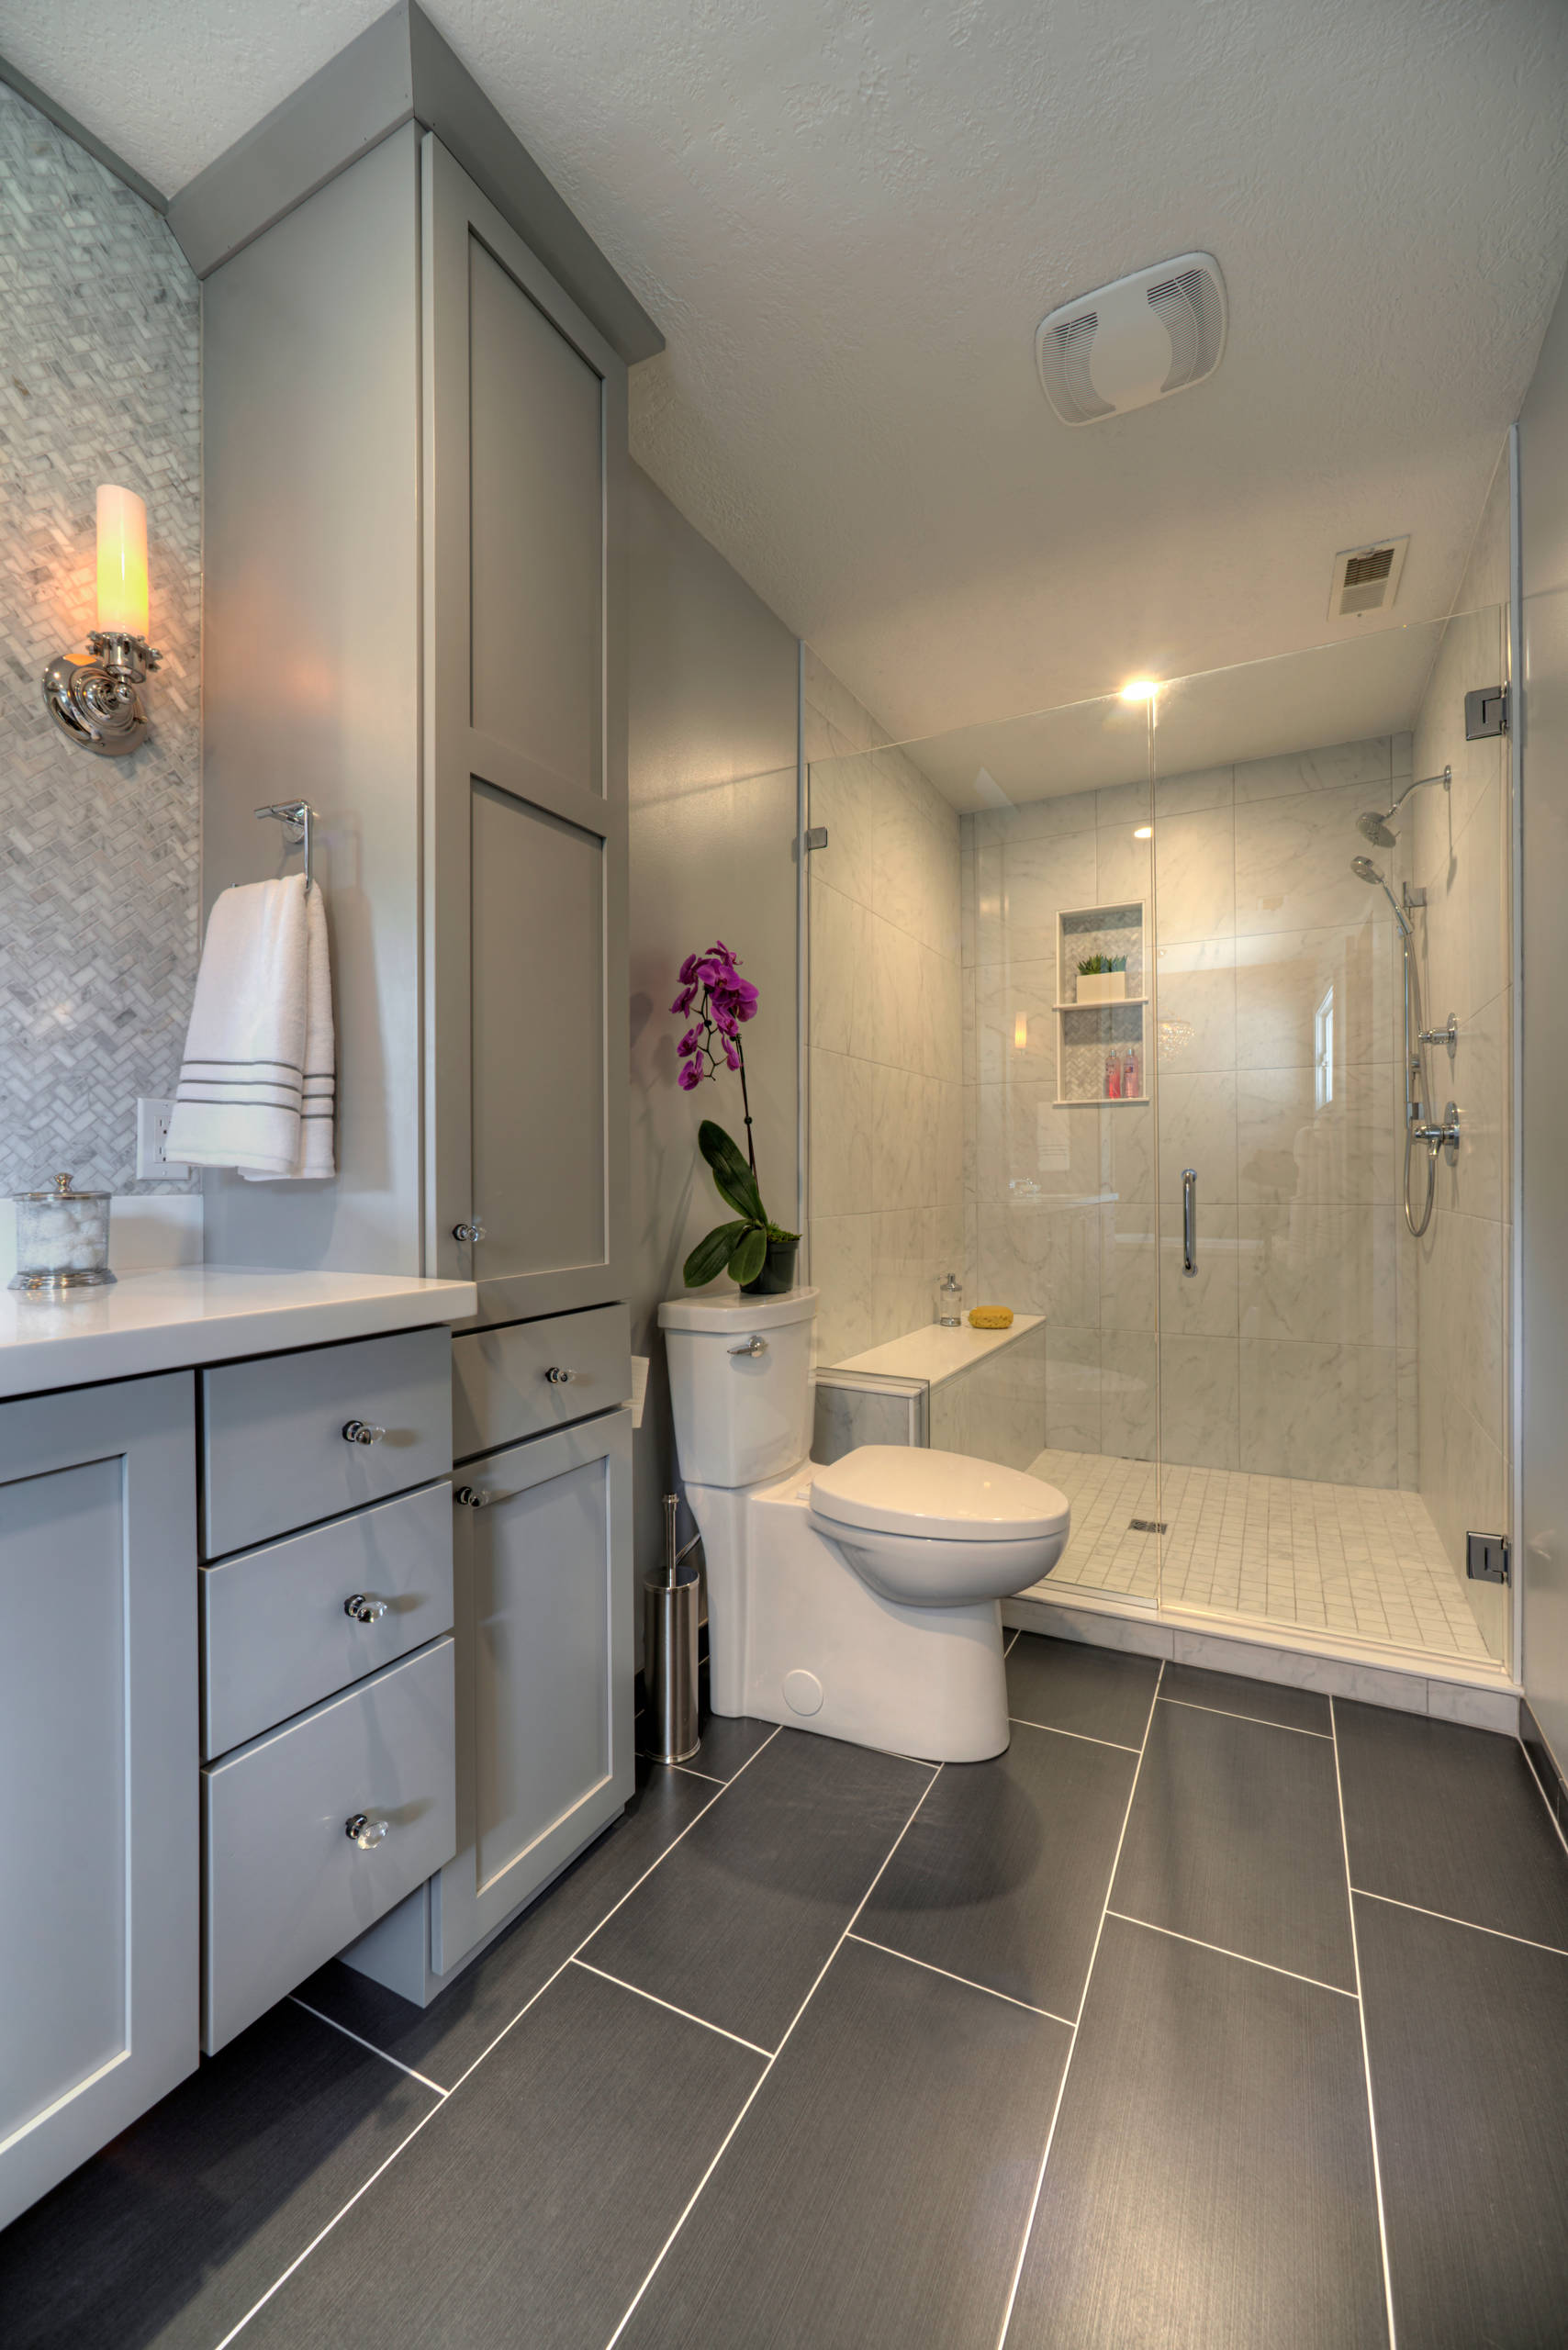 75 Beautiful Bathroom With Gray Cabinets Pictures Ideas February 2021 Houzz